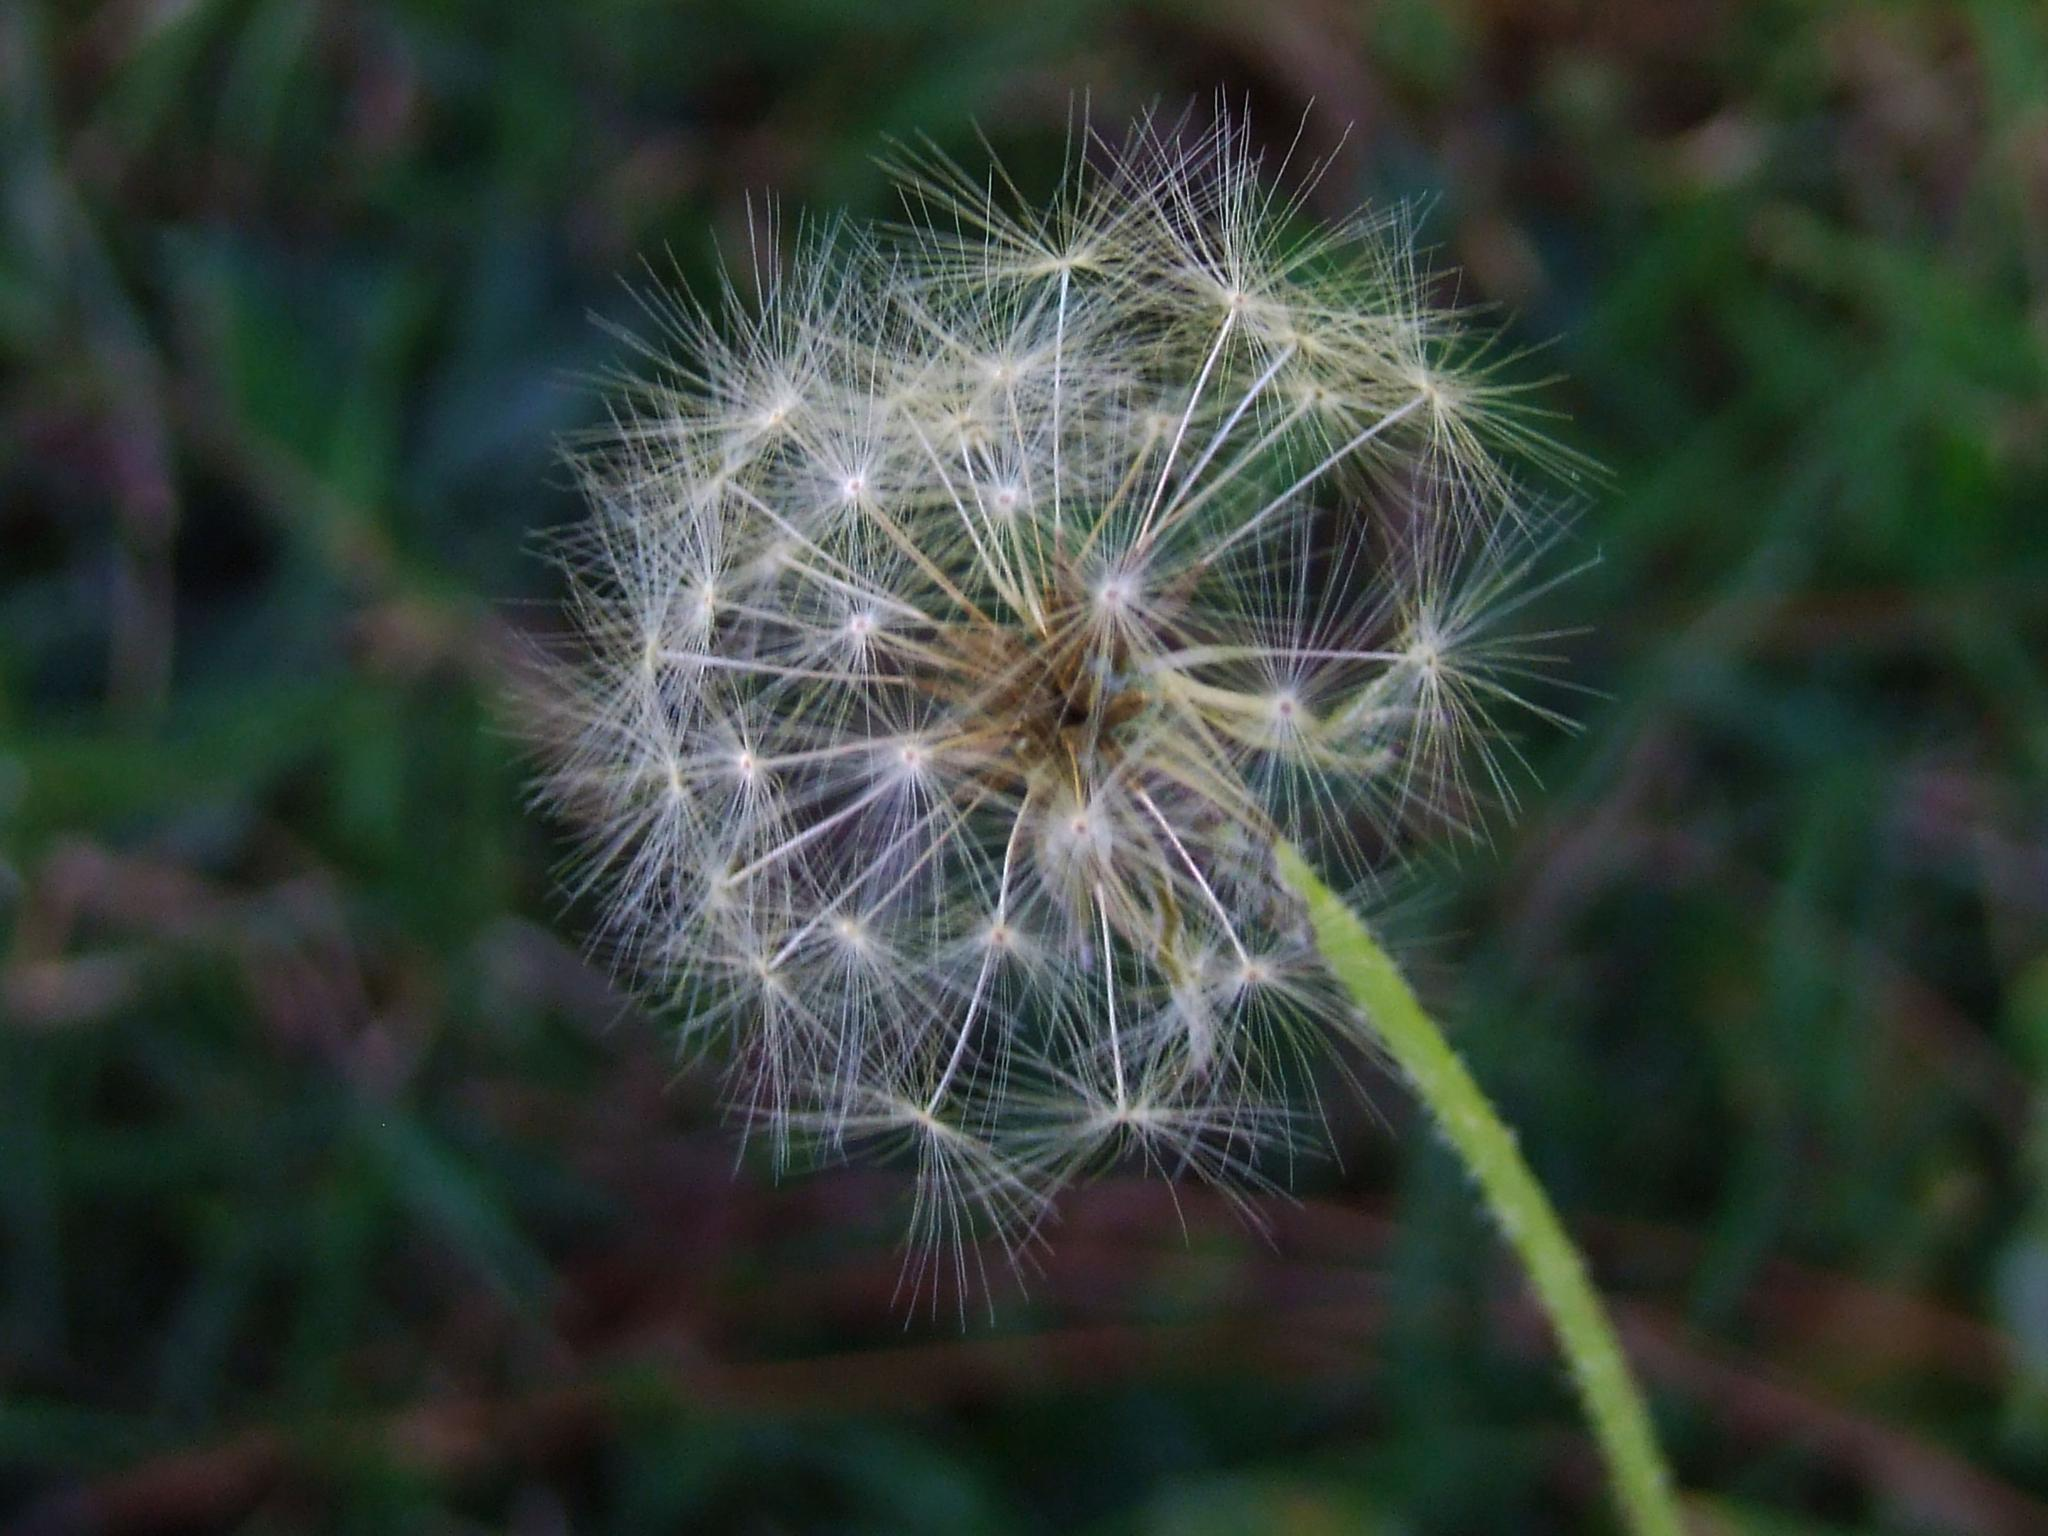 Dandelion by Mohammad Javeed Djoma